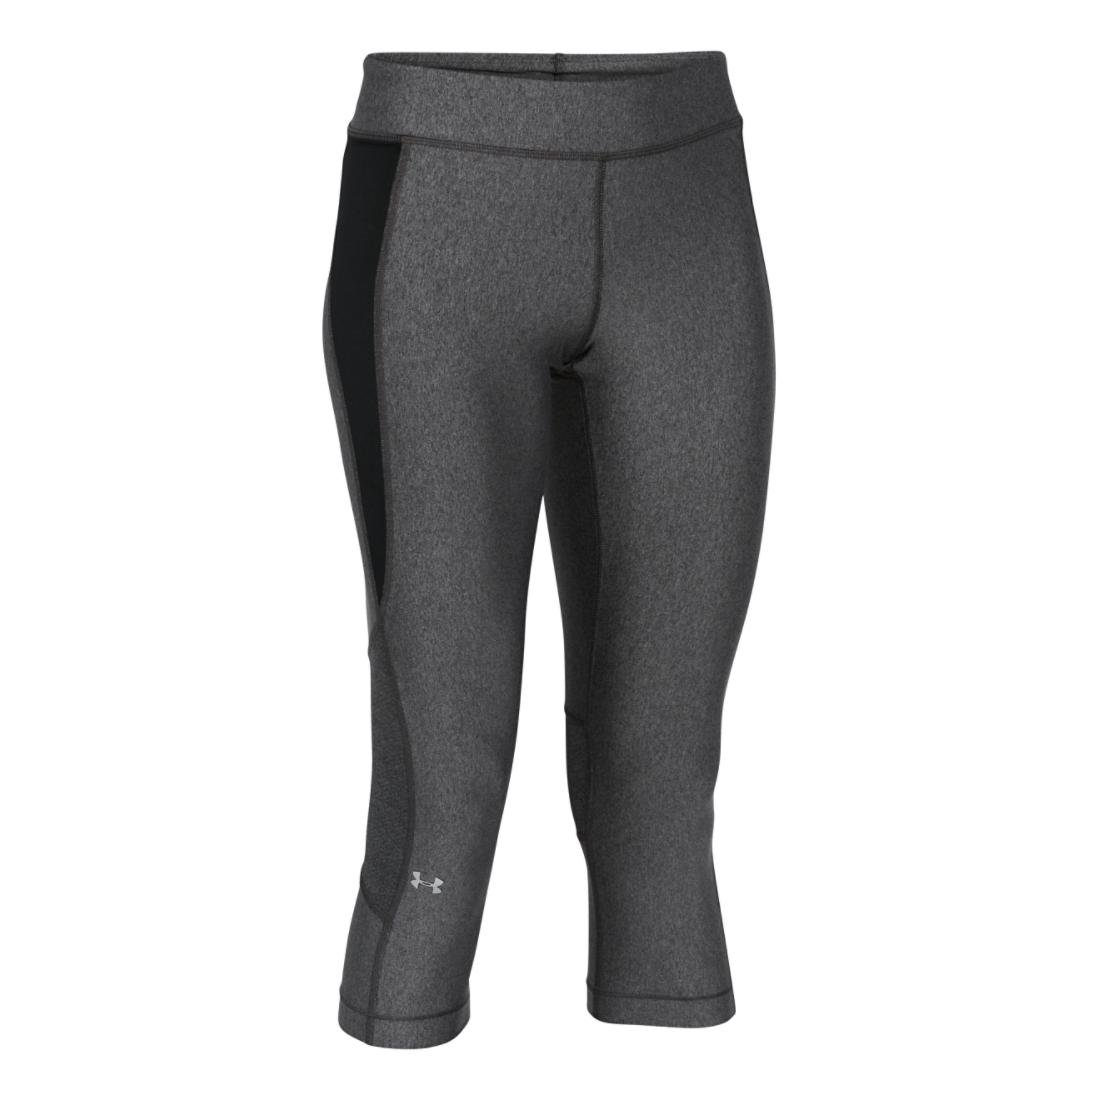 TALLA S (SM). Under Armour UA HG Armour Crop Leggings Piratas, Mujer